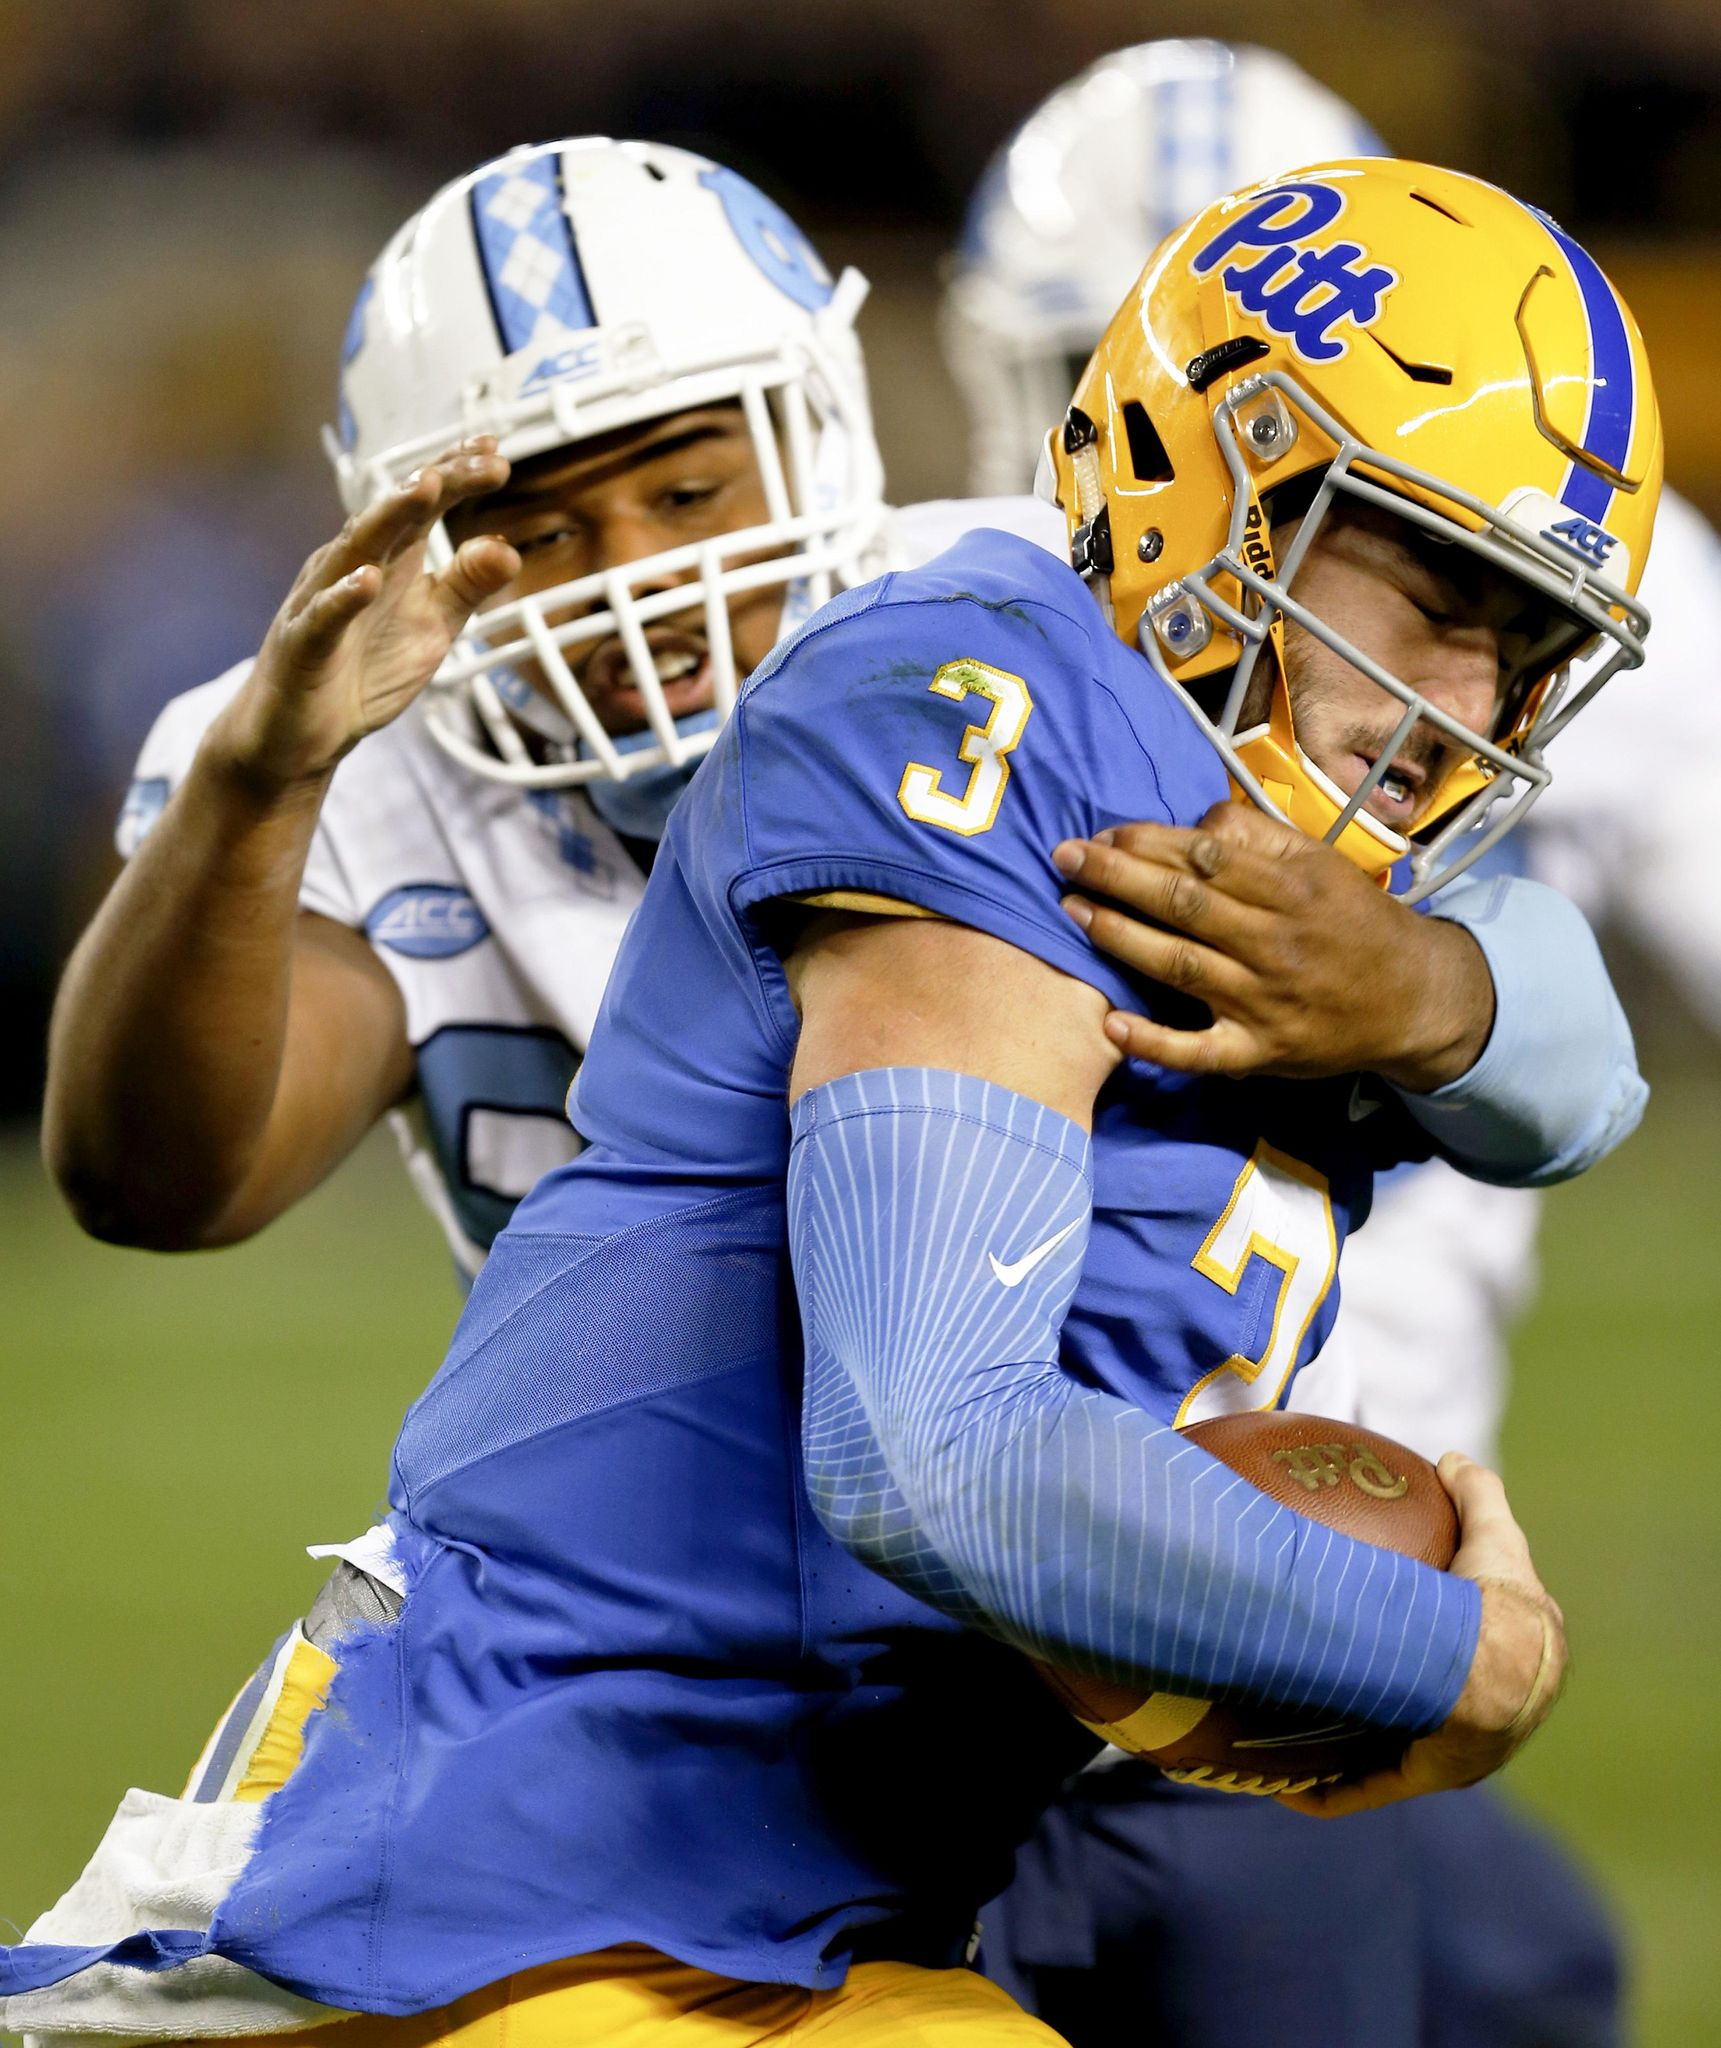 201502b6057009 Loss to UNC leaves Pitt with no wiggle room for bowl bid ...